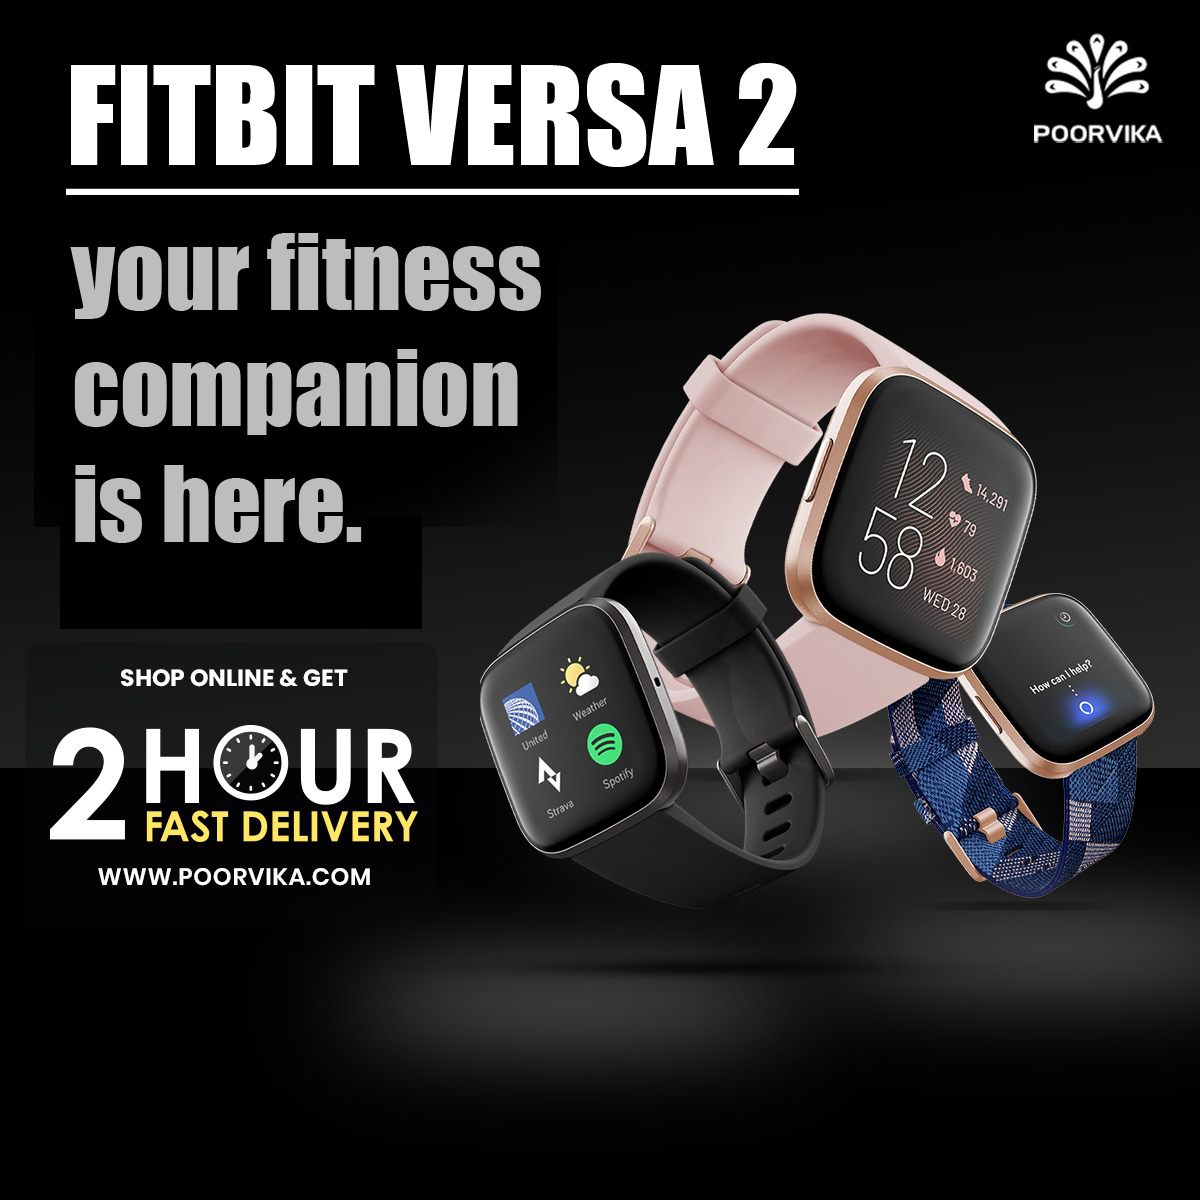 Fitbit-Versa-2-Your-fitness-companion-is-here